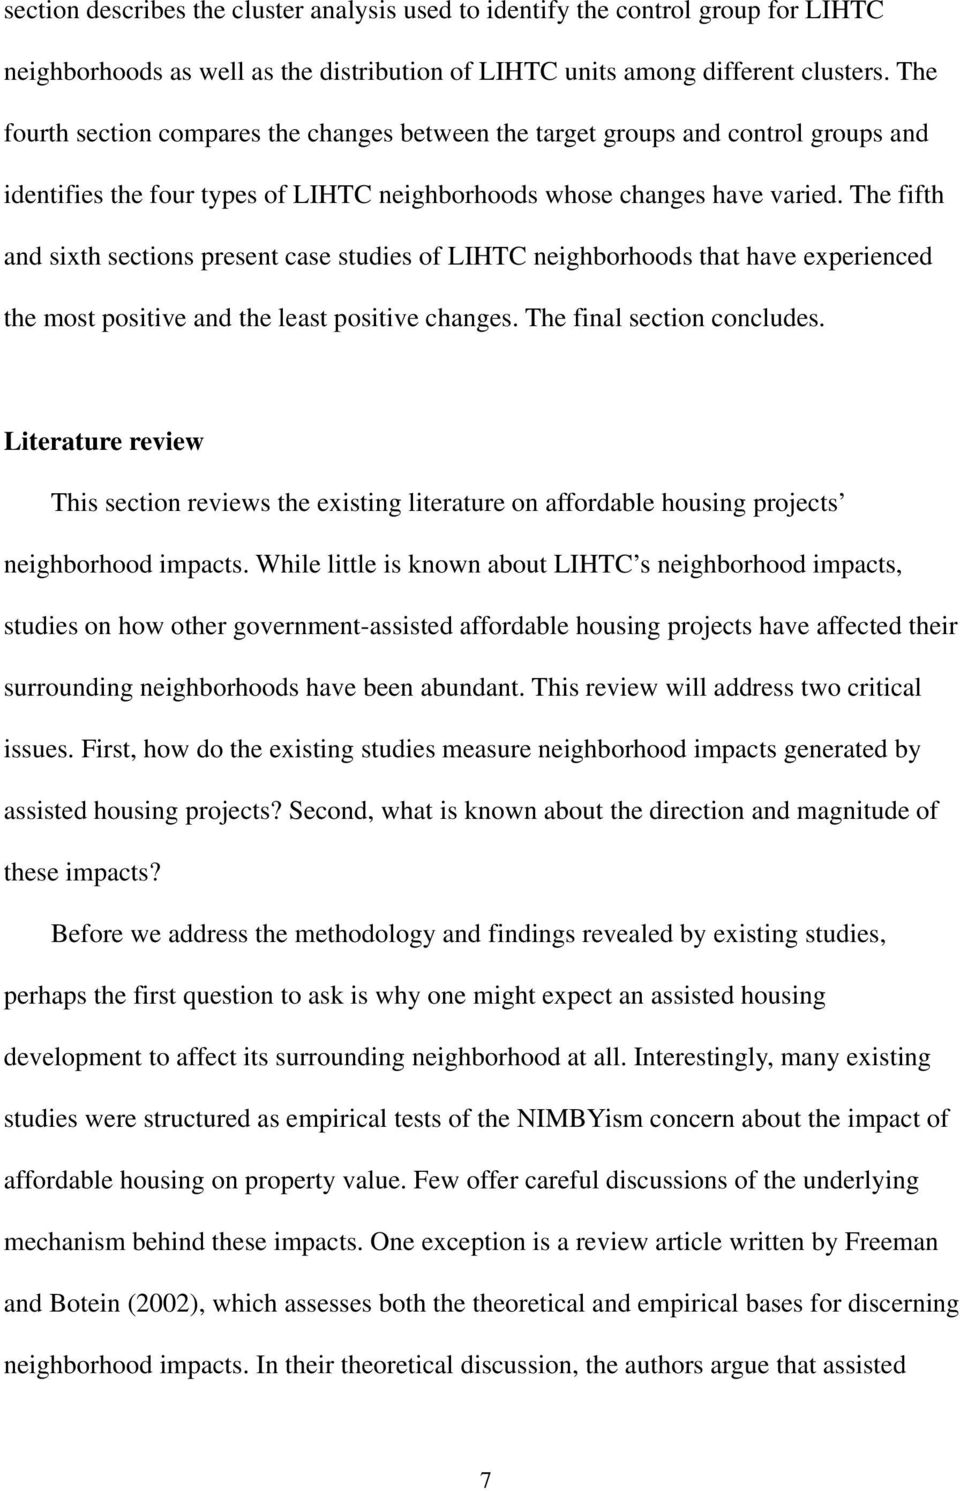 The fifth and sixth sections present case studies of LIHTC neighborhoods that have experienced the most positive and the least positive changes. The final section concludes.